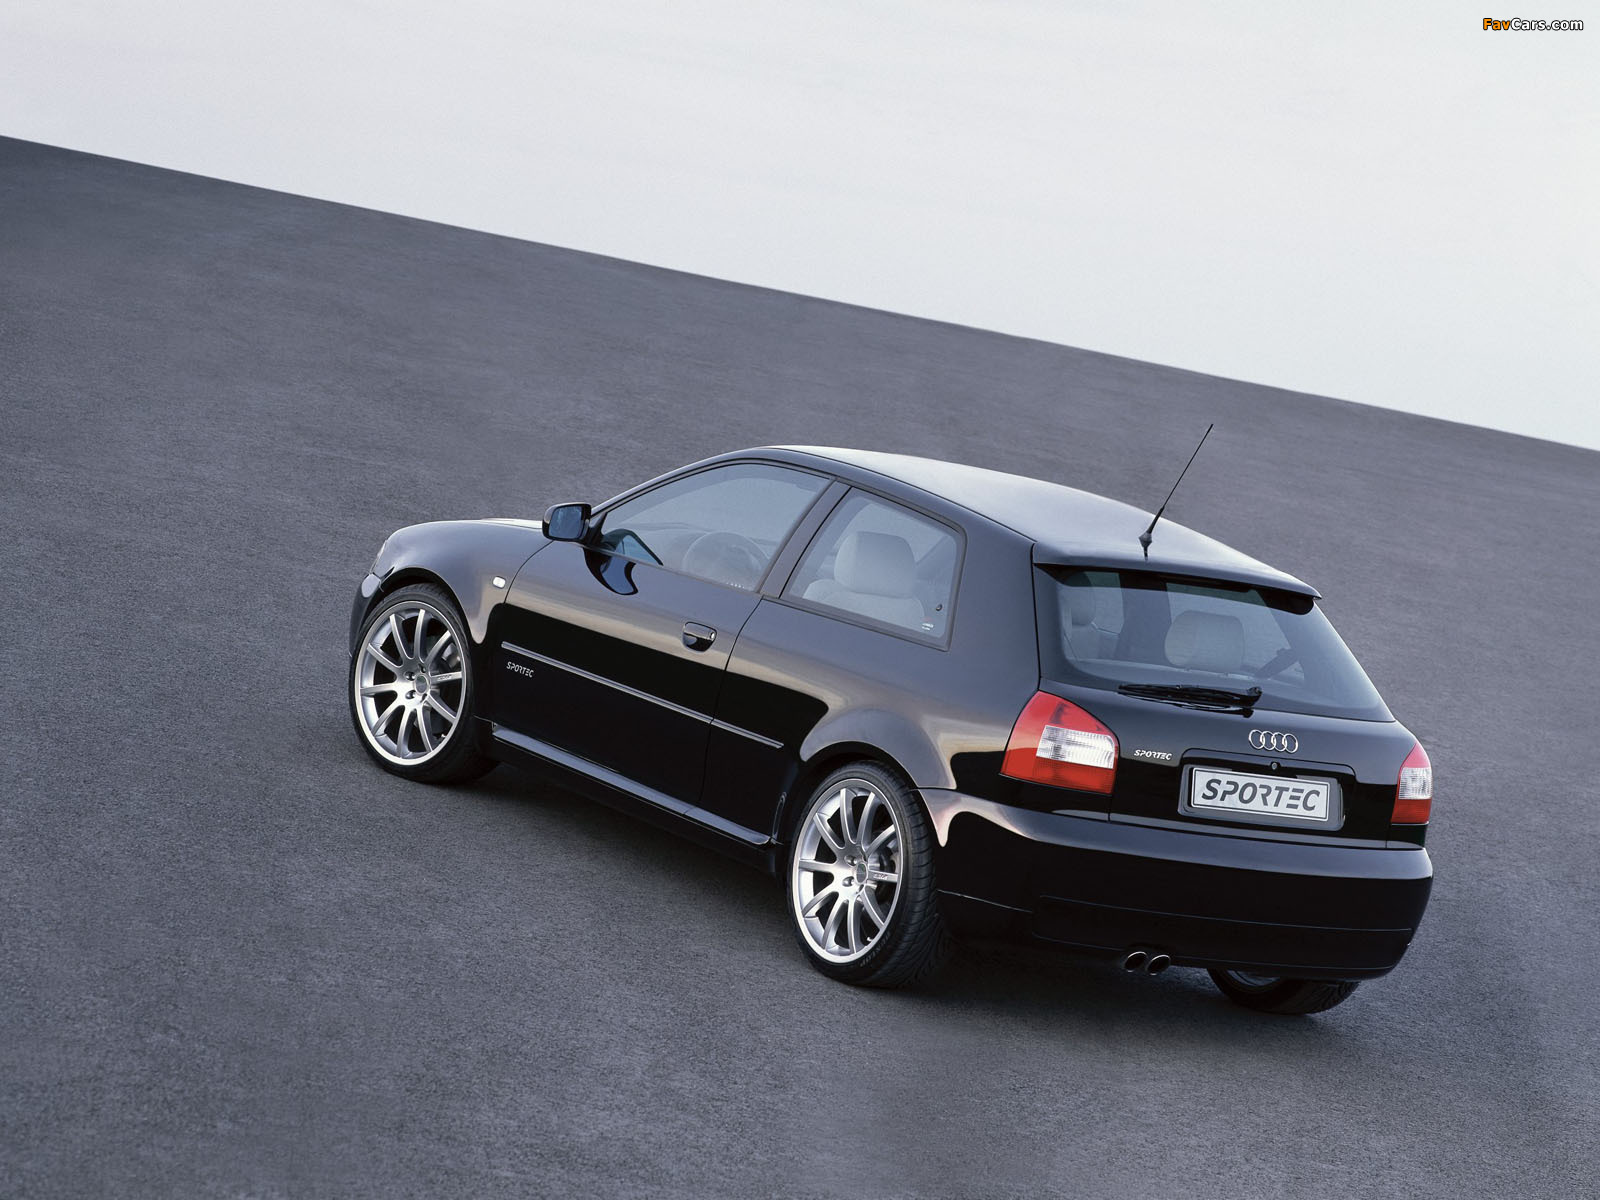 2001 Audi A3 (8l) - pictures, information and specs - Auto ...